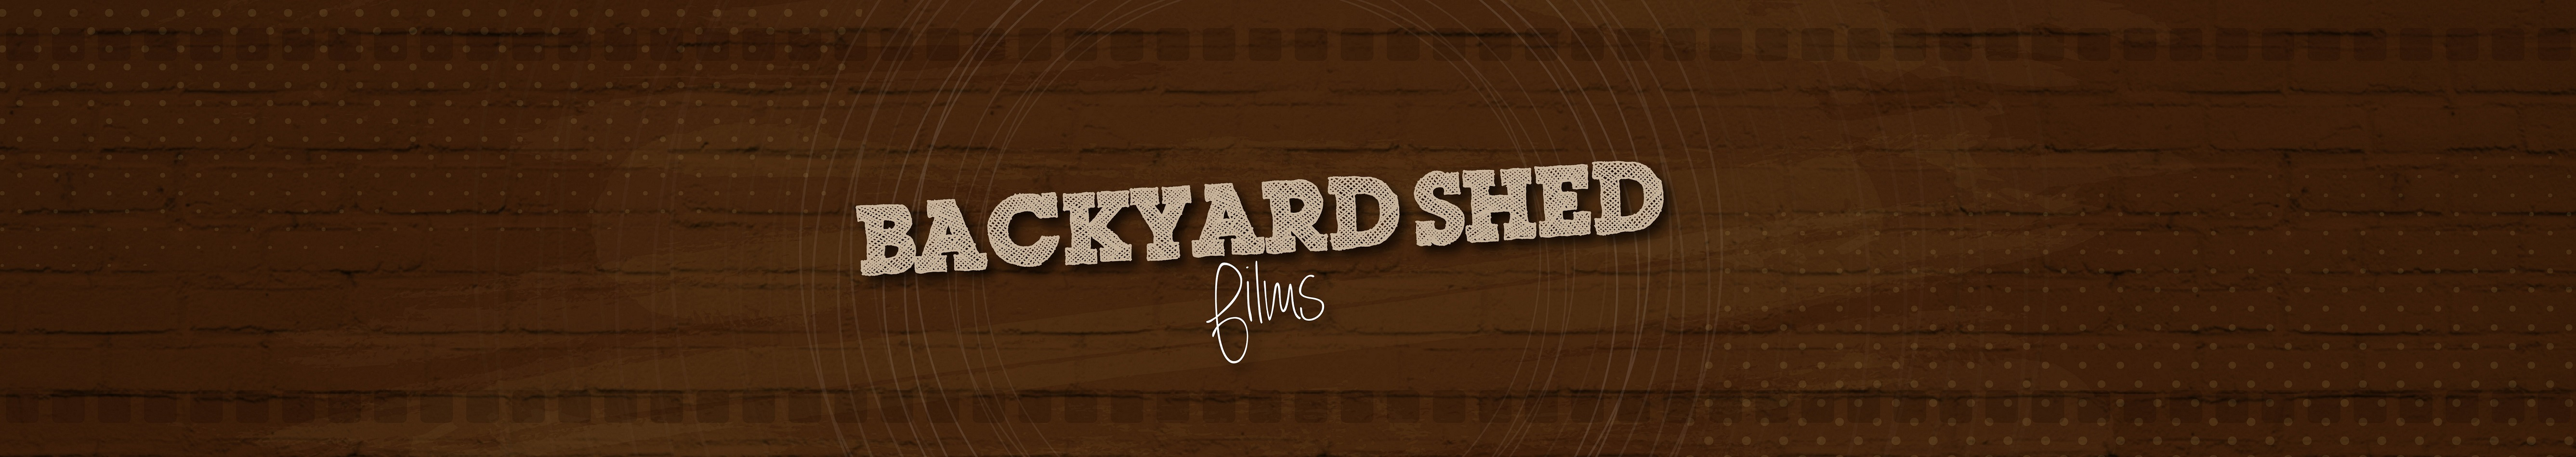 Armstrong Park (client promotional video) | Backyard Shed Films